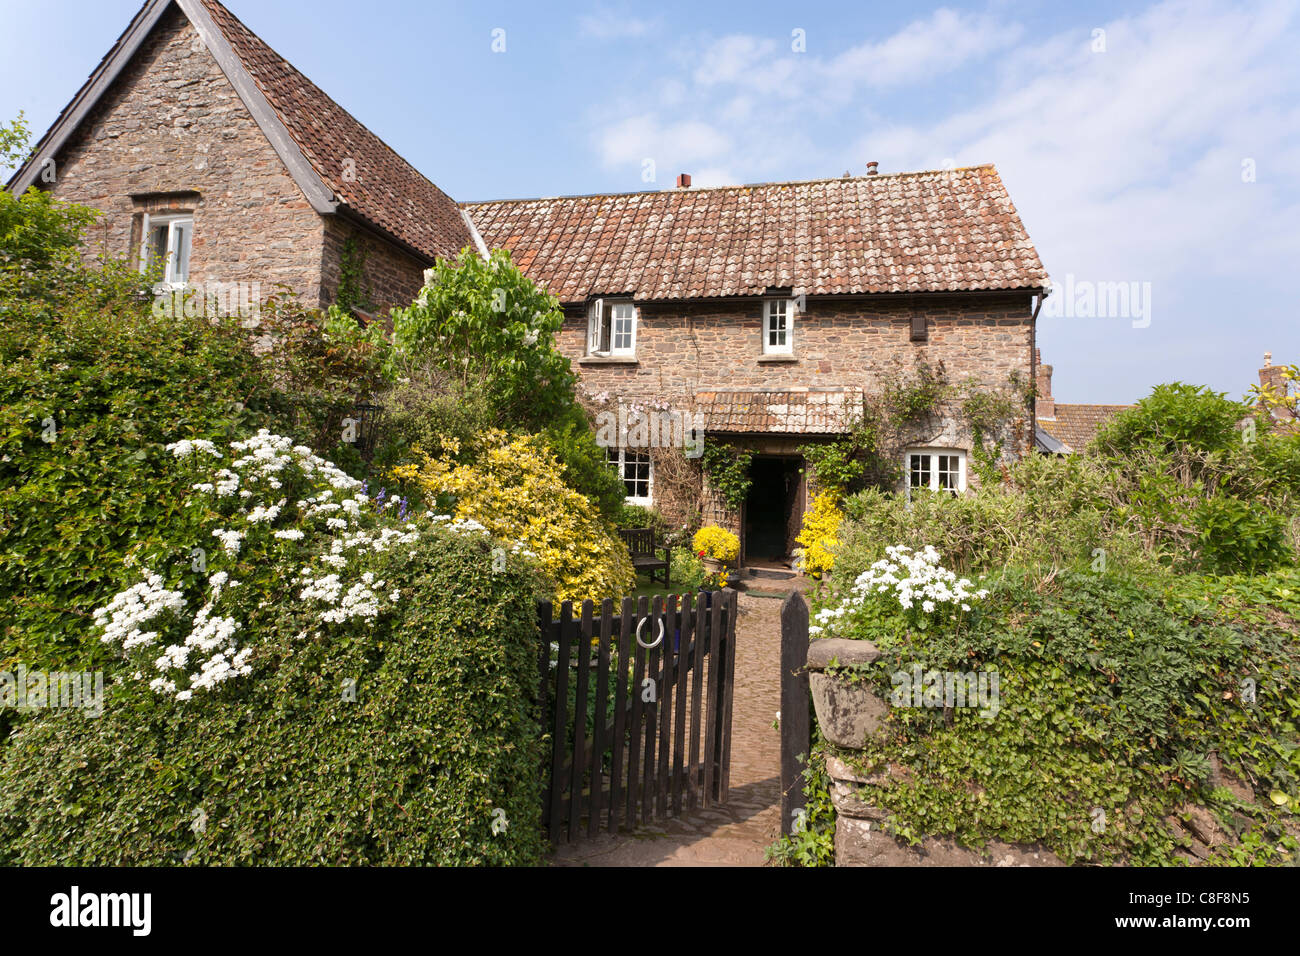 A typical Exmoor cottage in the village of Horner, Somerset - Stock Image